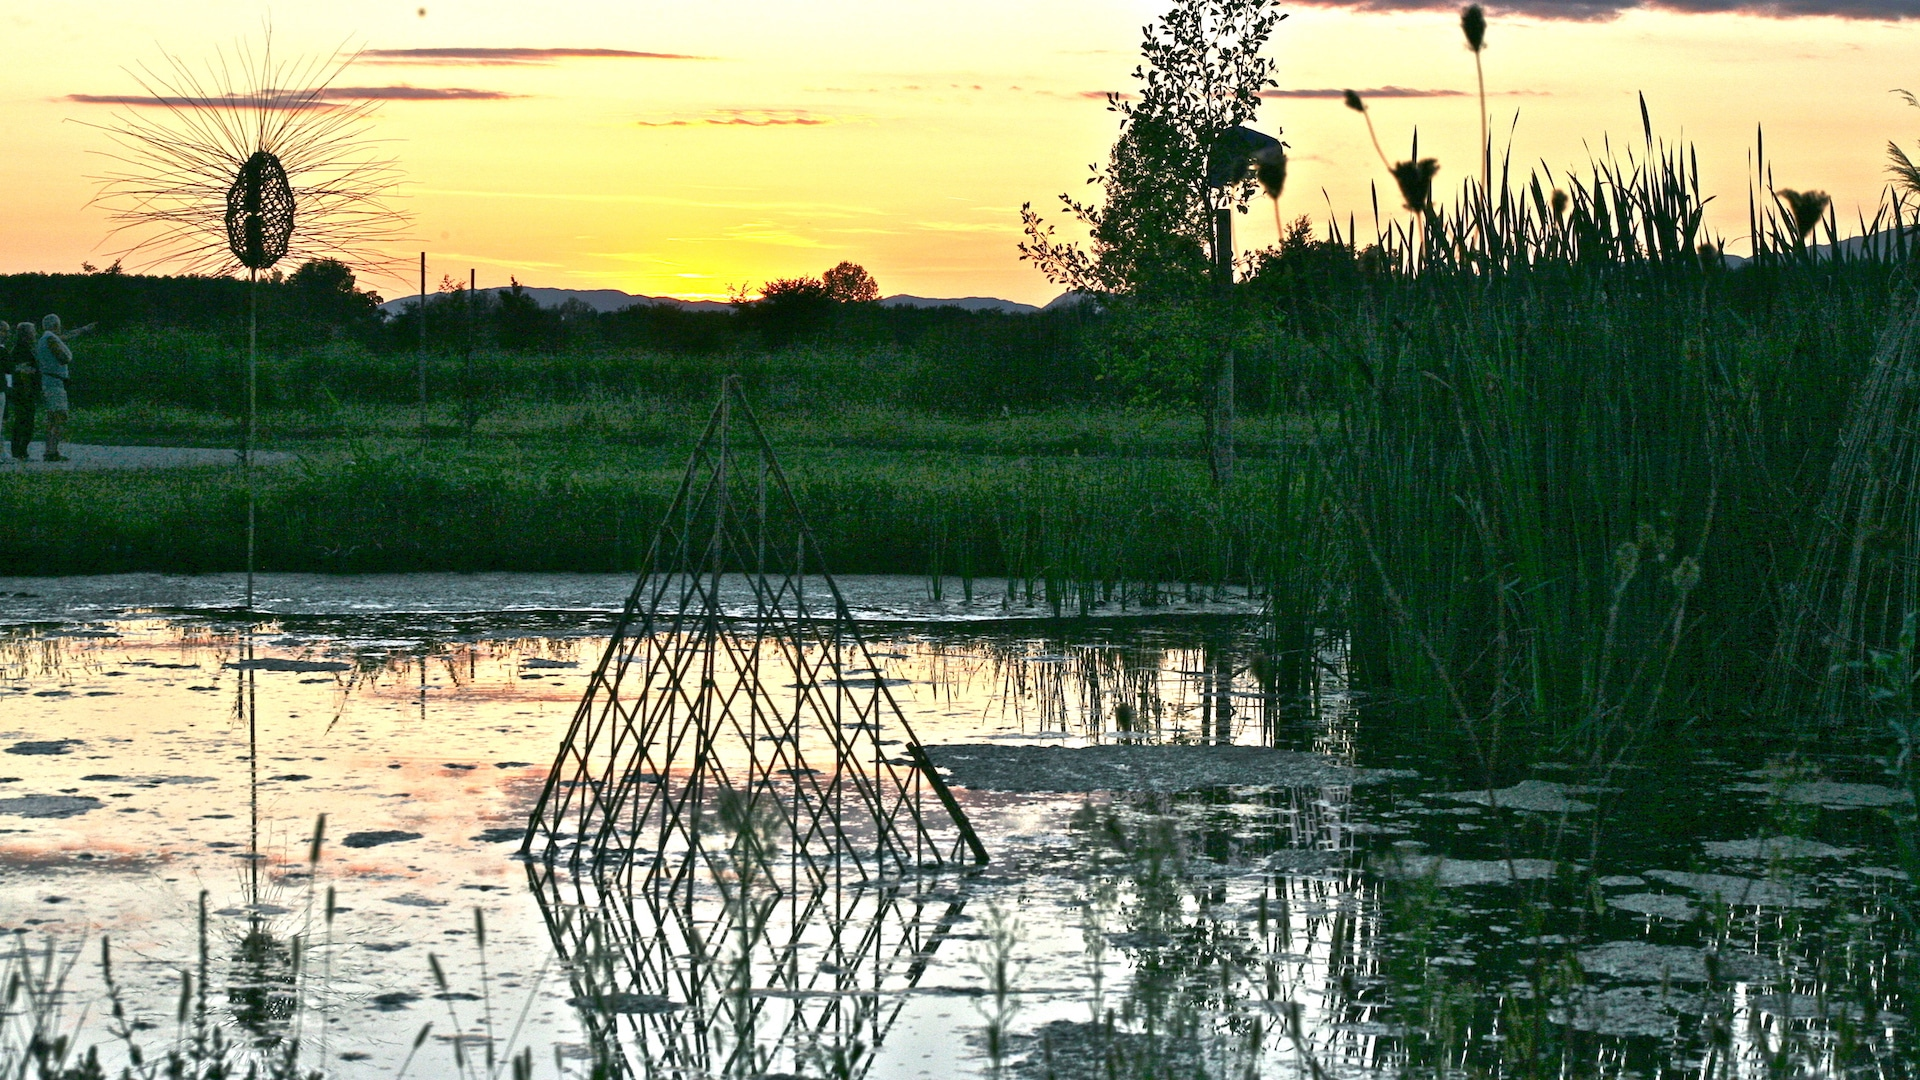 Land Art bamboo and swamp Alejandro Guzzetti